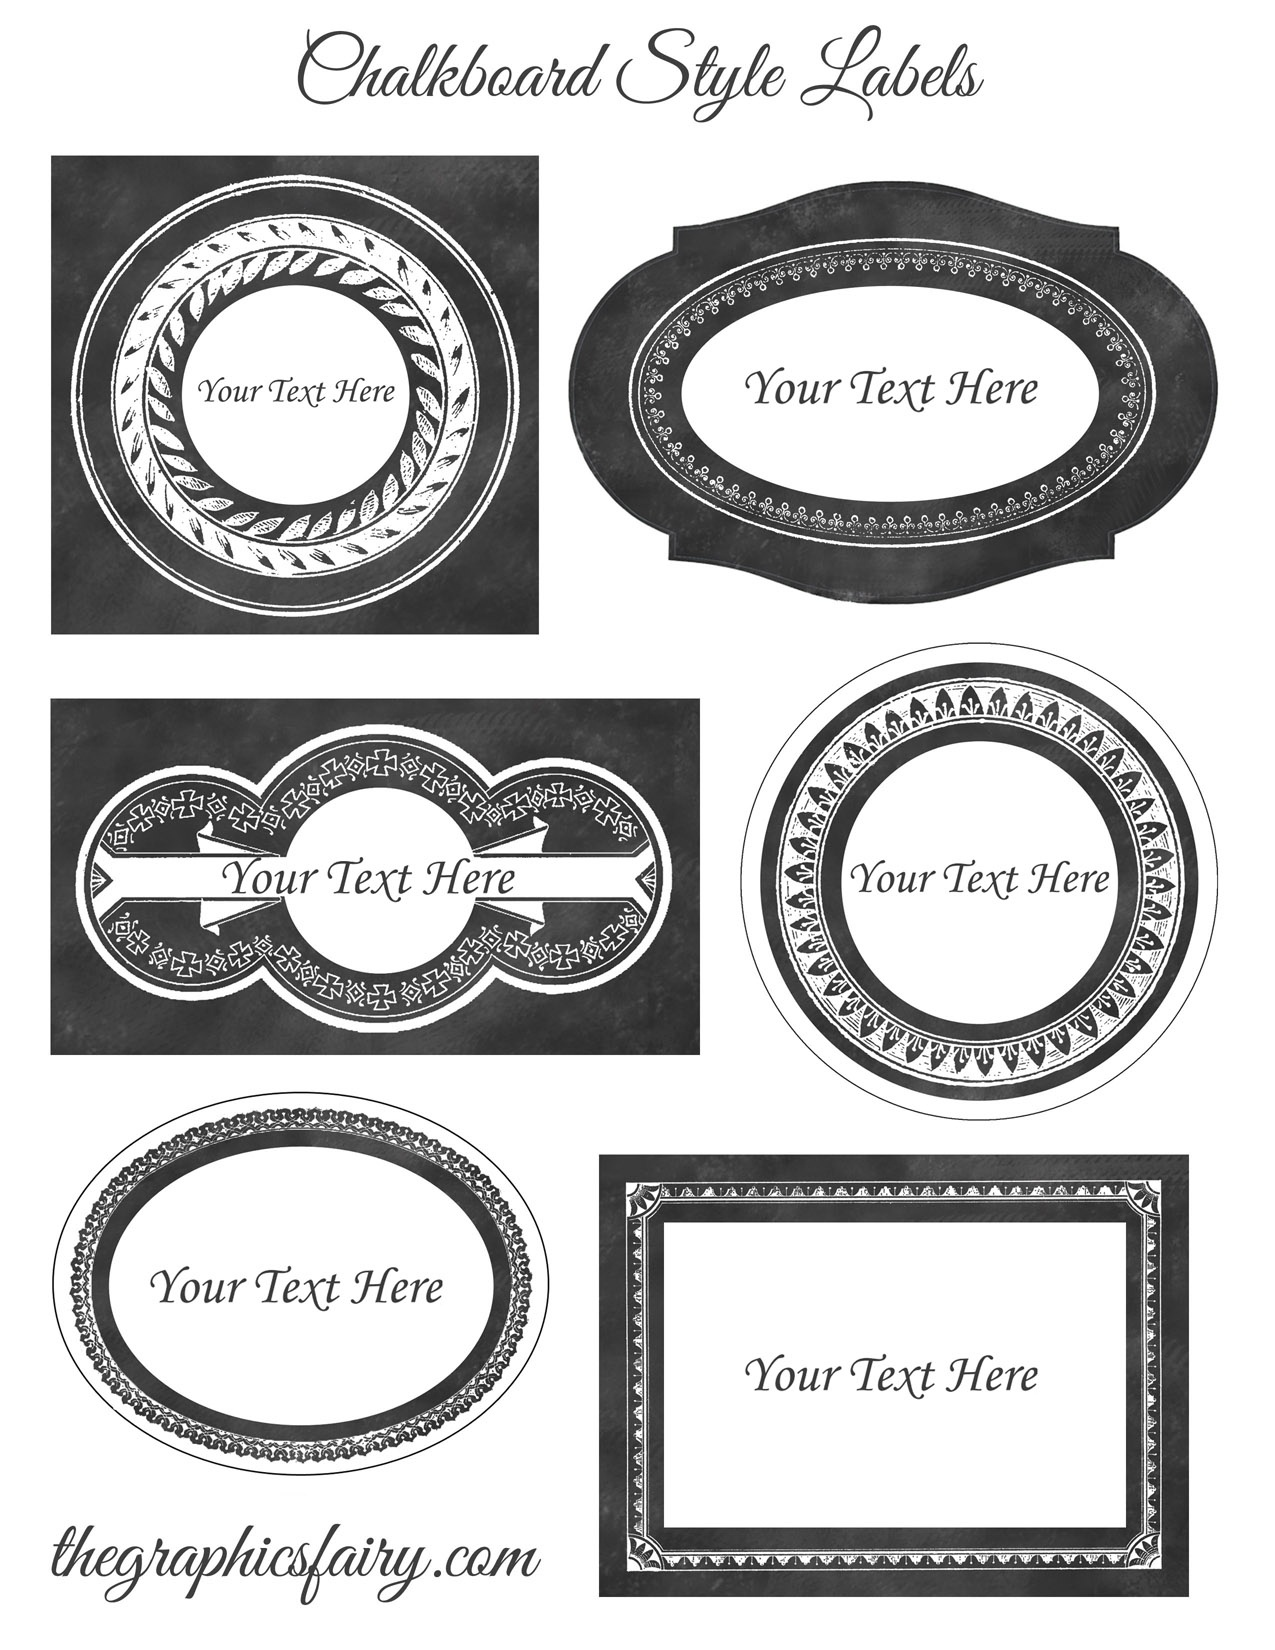 Chalkboard Style Printable Labels - Editable! - The Graphics Fairy - Free Editable Printable Labels